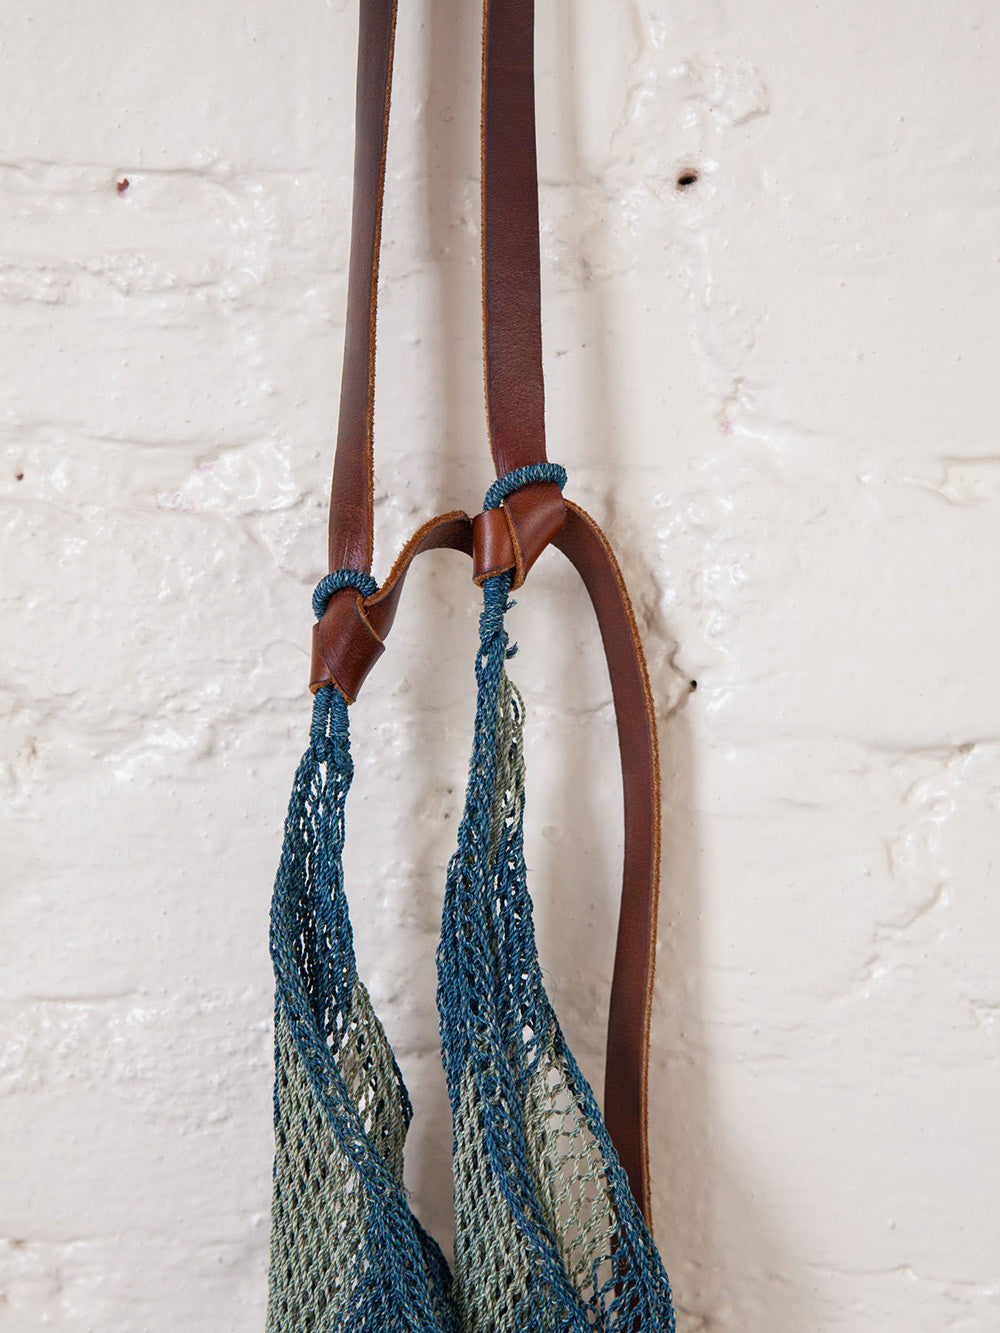 Maguey Fiber Netted Bag